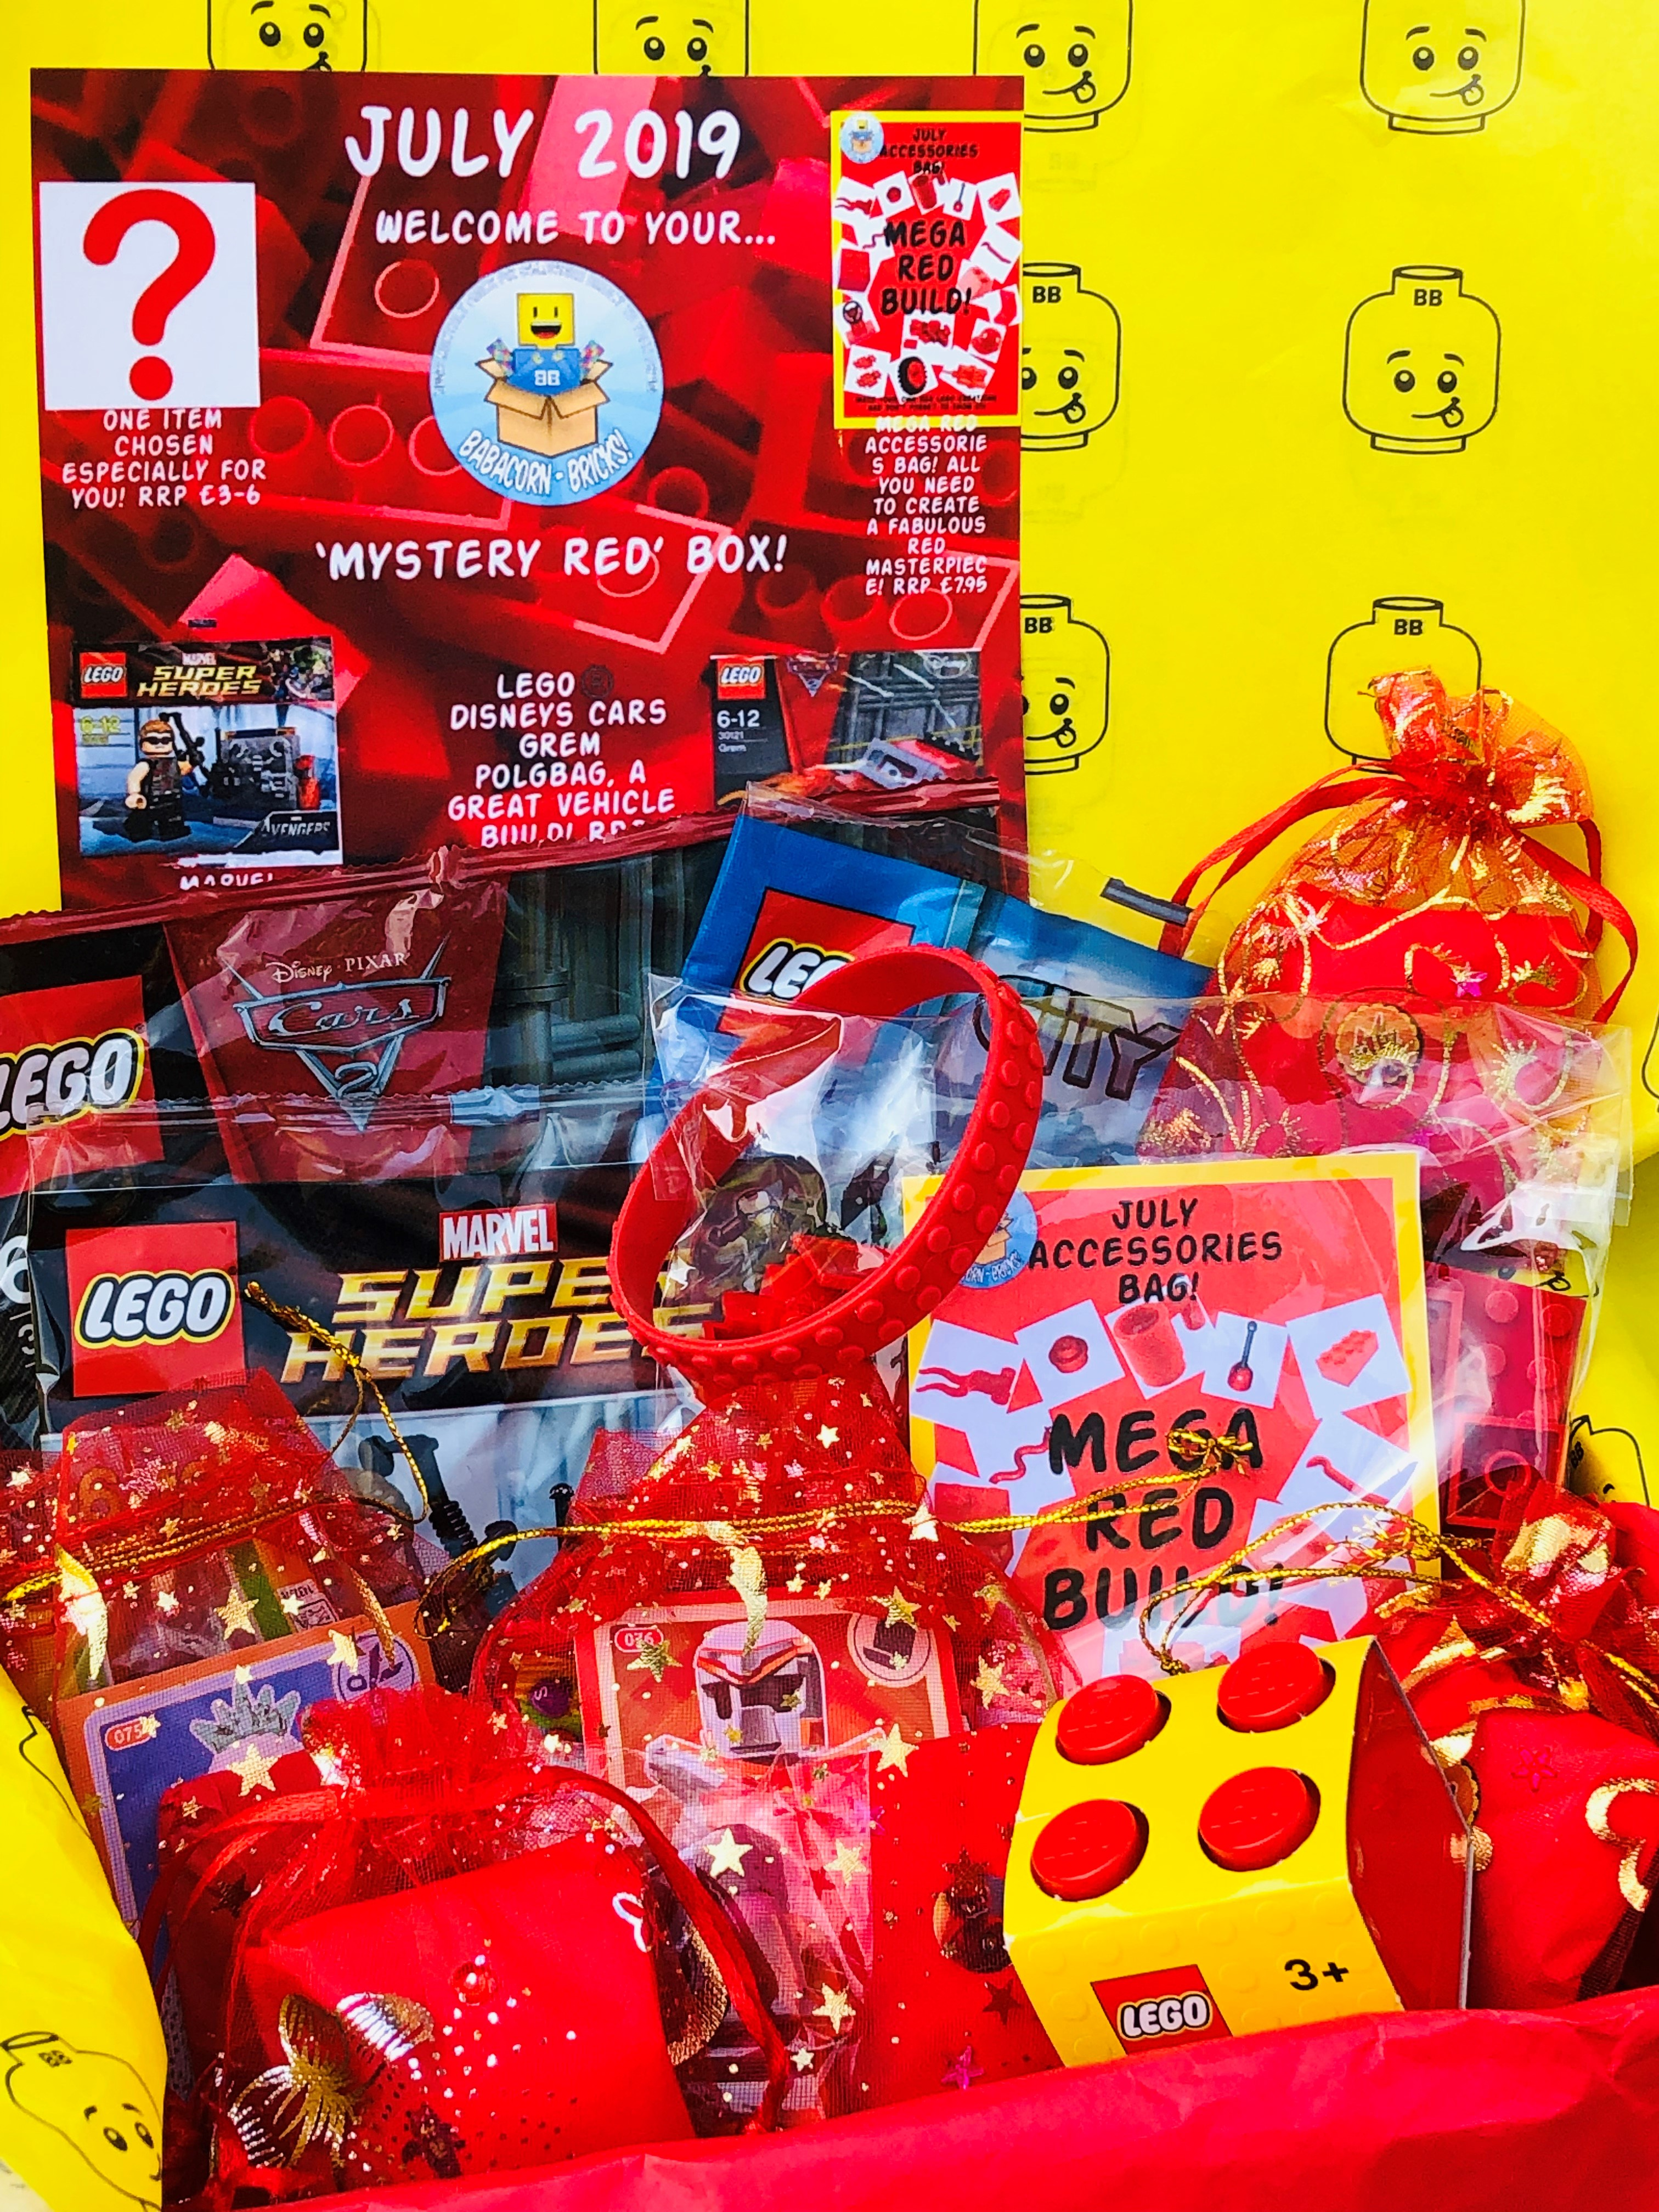 July 2019 Box 'Mystery Red'